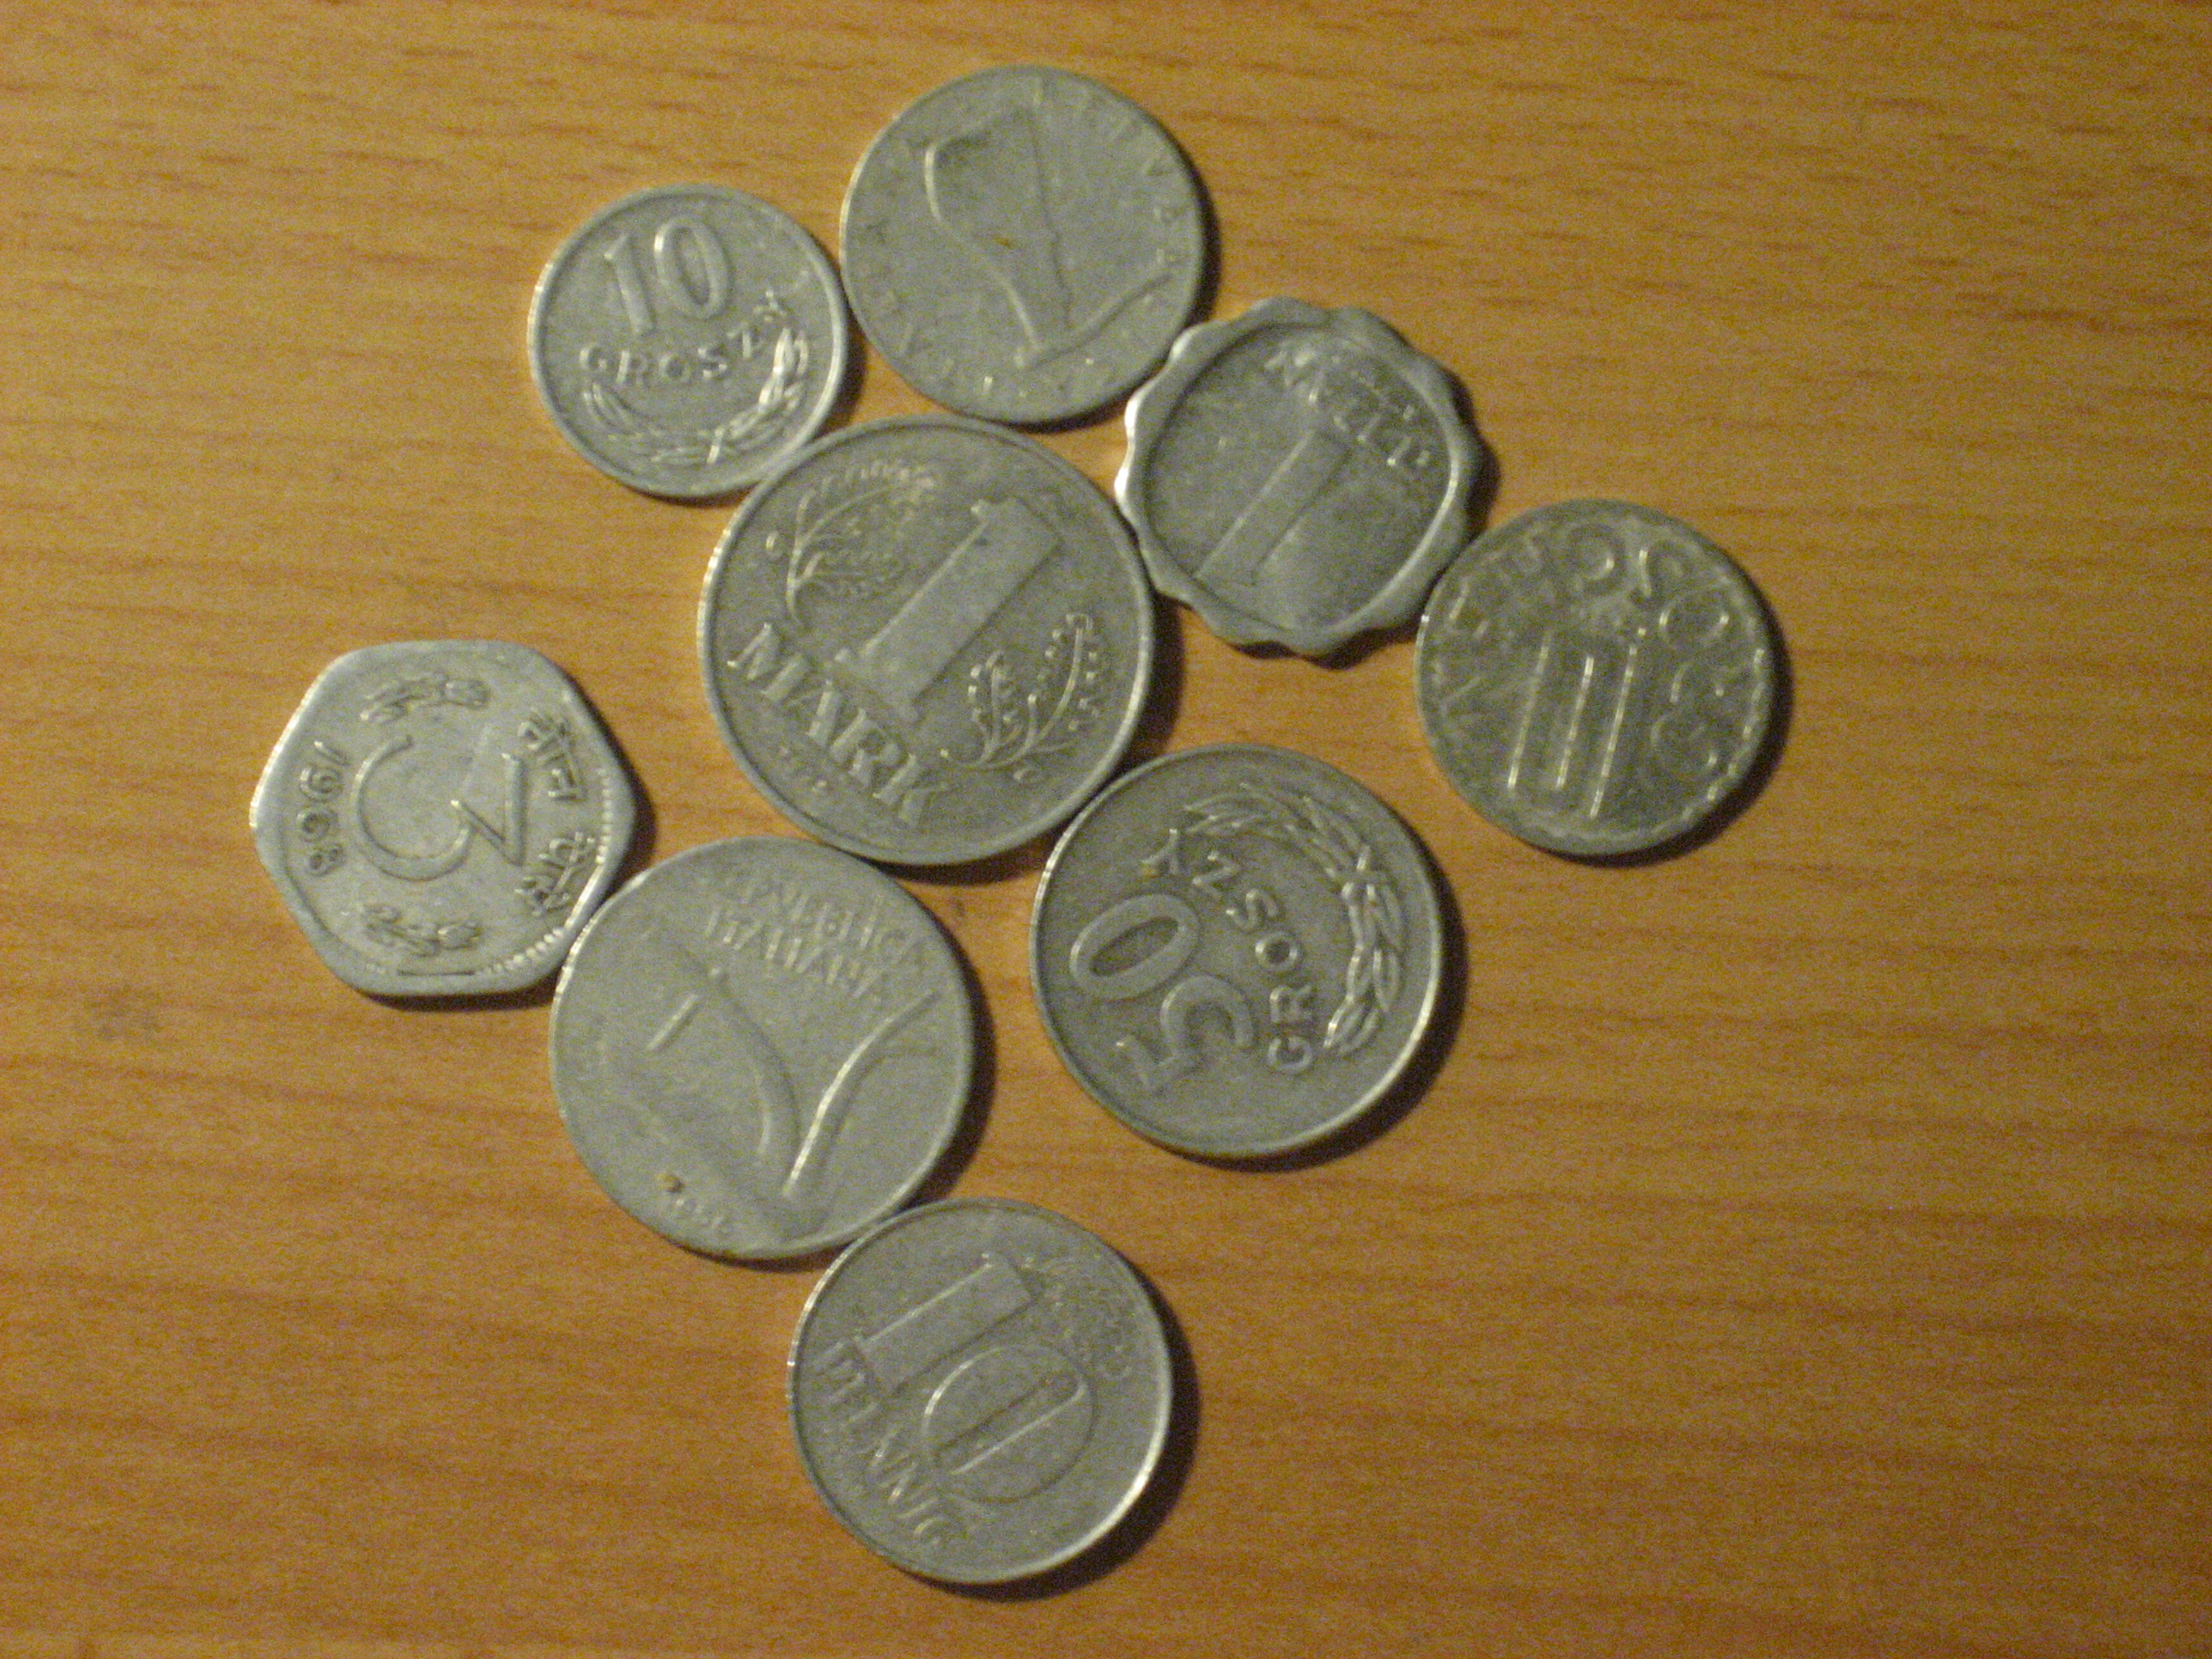 What Is Aluminum Used For >> File:Aluminium coins.jpg - Wikimedia Commons